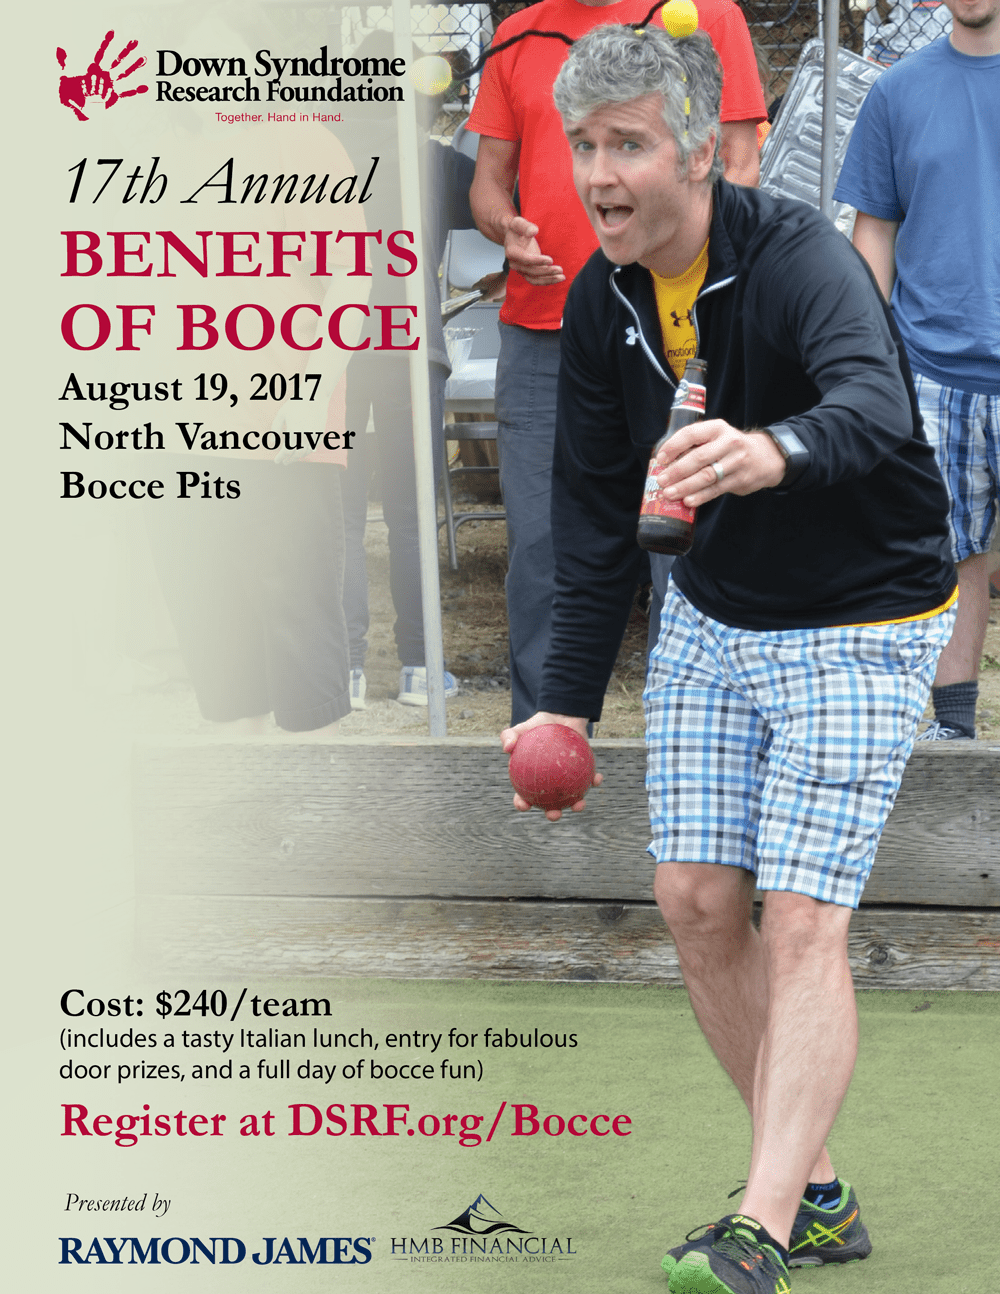 17th Annual Benefits of Bocce: Get Rolling for a Great Cause! at North Vancouver Bocce Pits at Boulevard Park